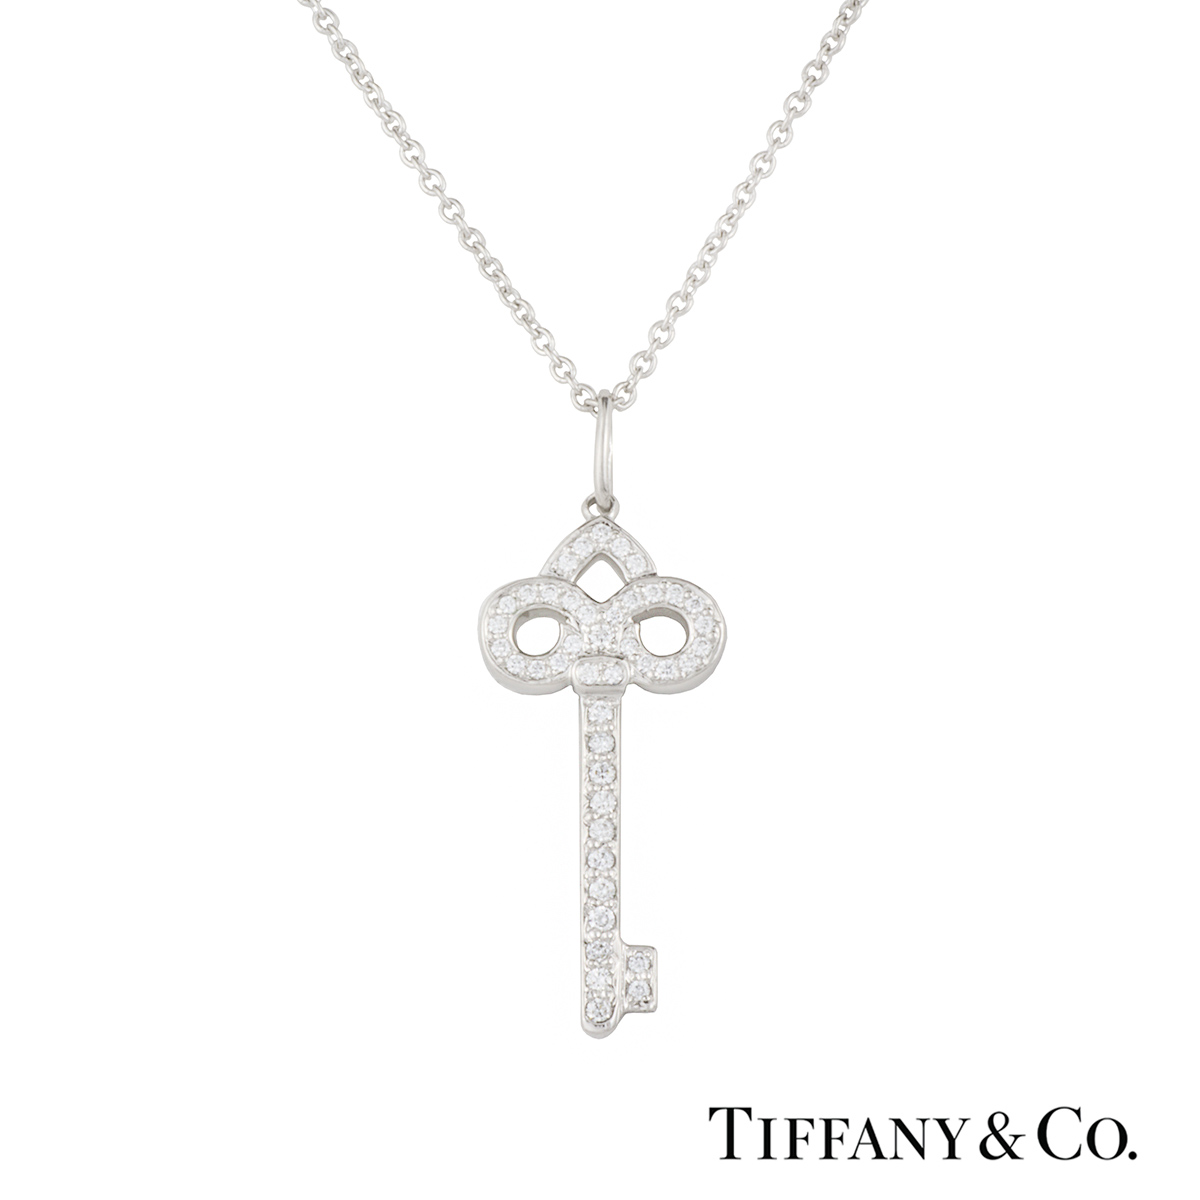 Tiffany co diamond set fleur de lis key pendant in platinum diamond set fleur de lis key pendant in platinum aloadofball Images